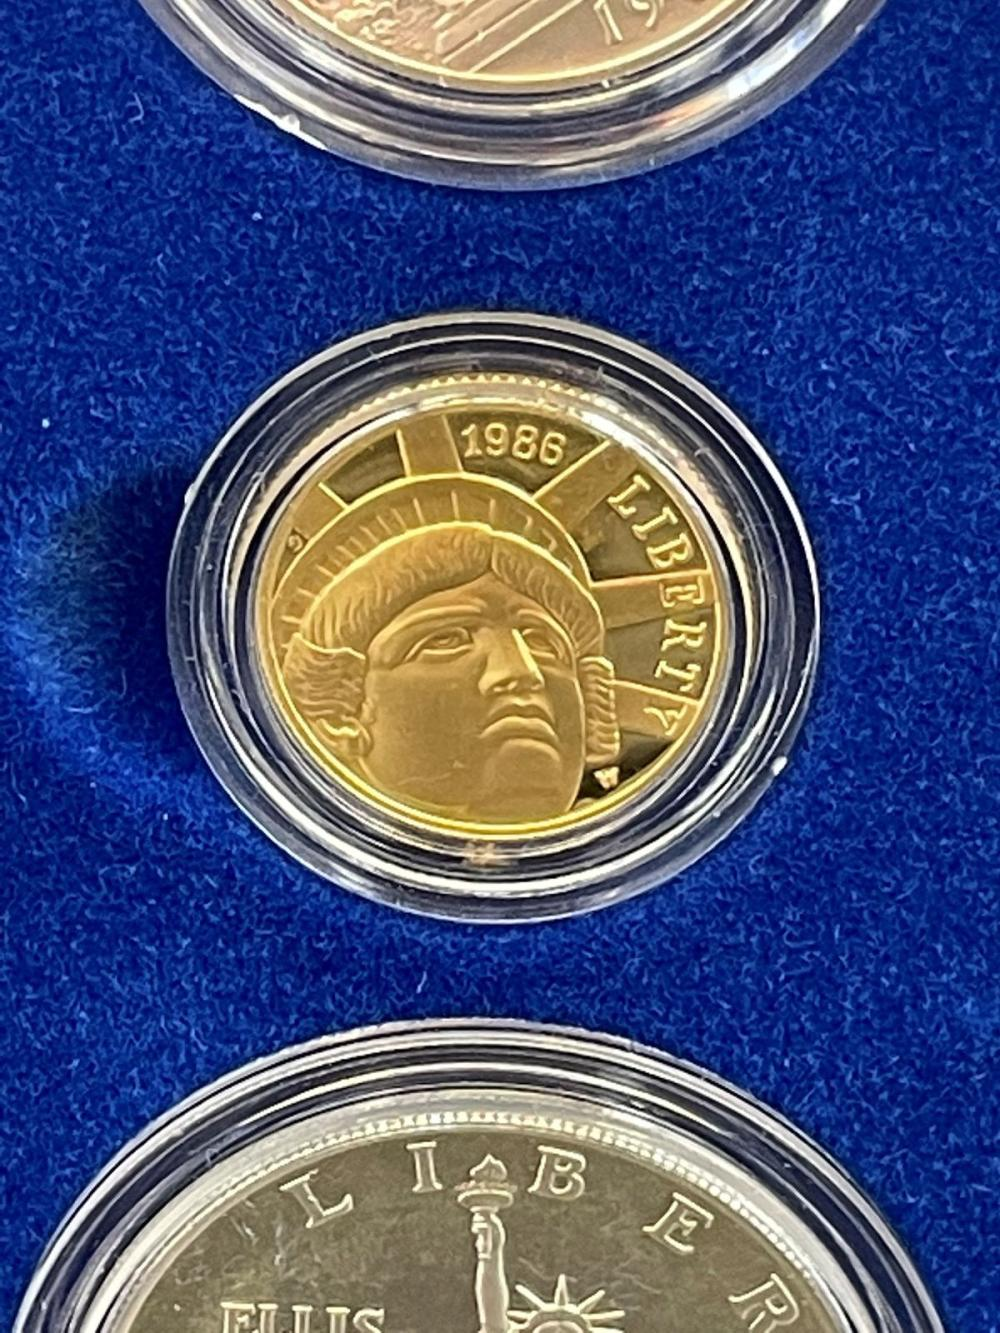 1986 U.S. Mint Liberty Coin Set Silver and $5 Gold in Presentation Box